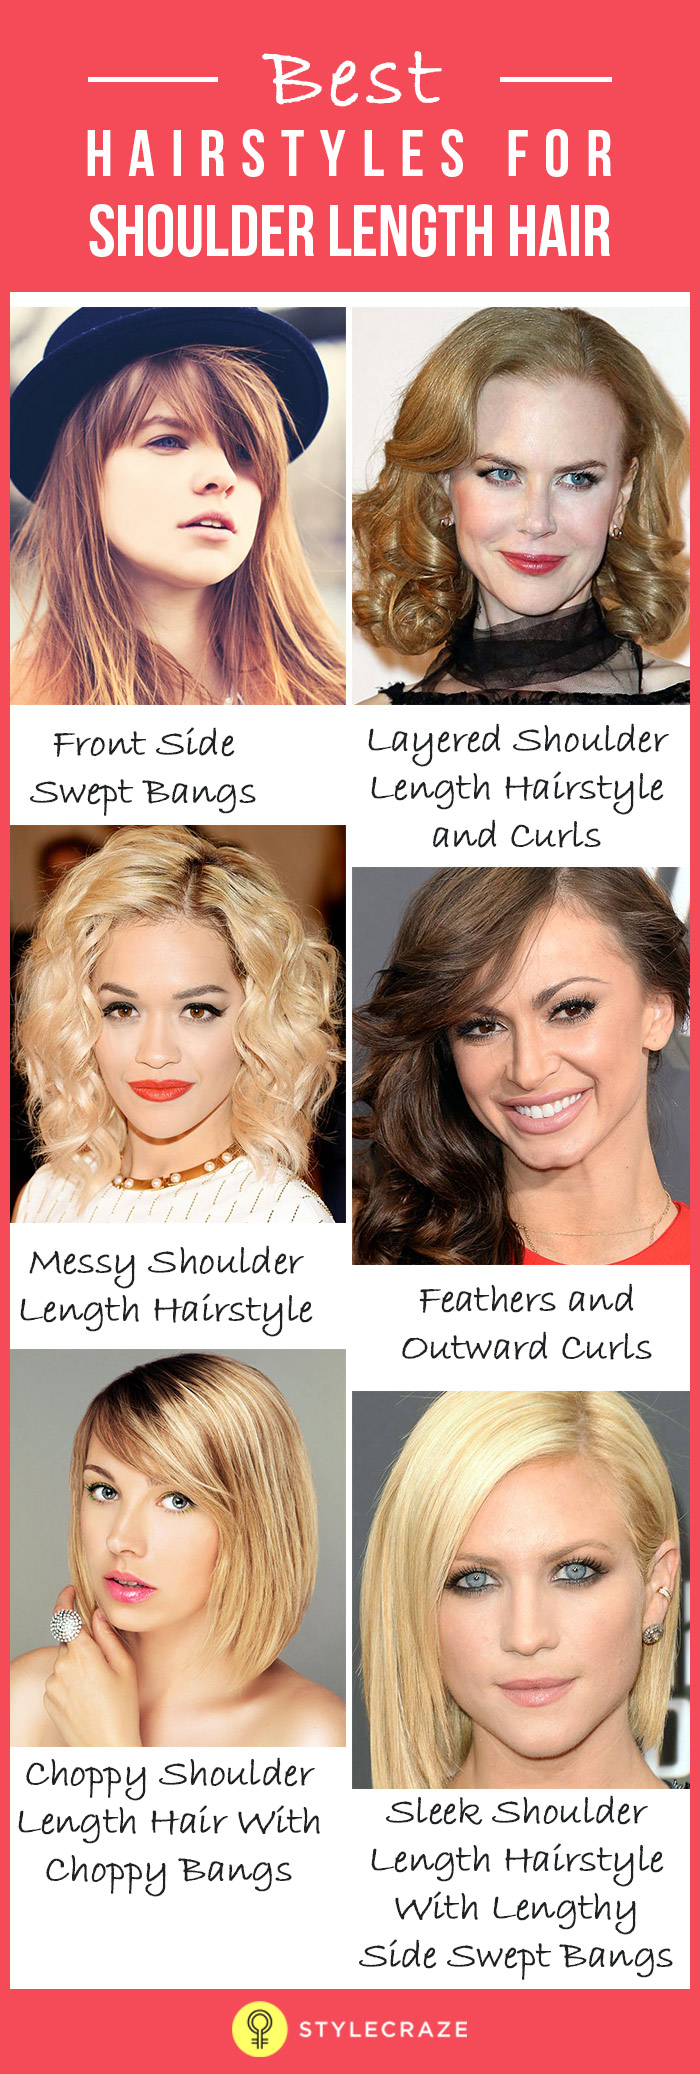 Best Hairstyles For Shoulder Length Hair – My Top 10